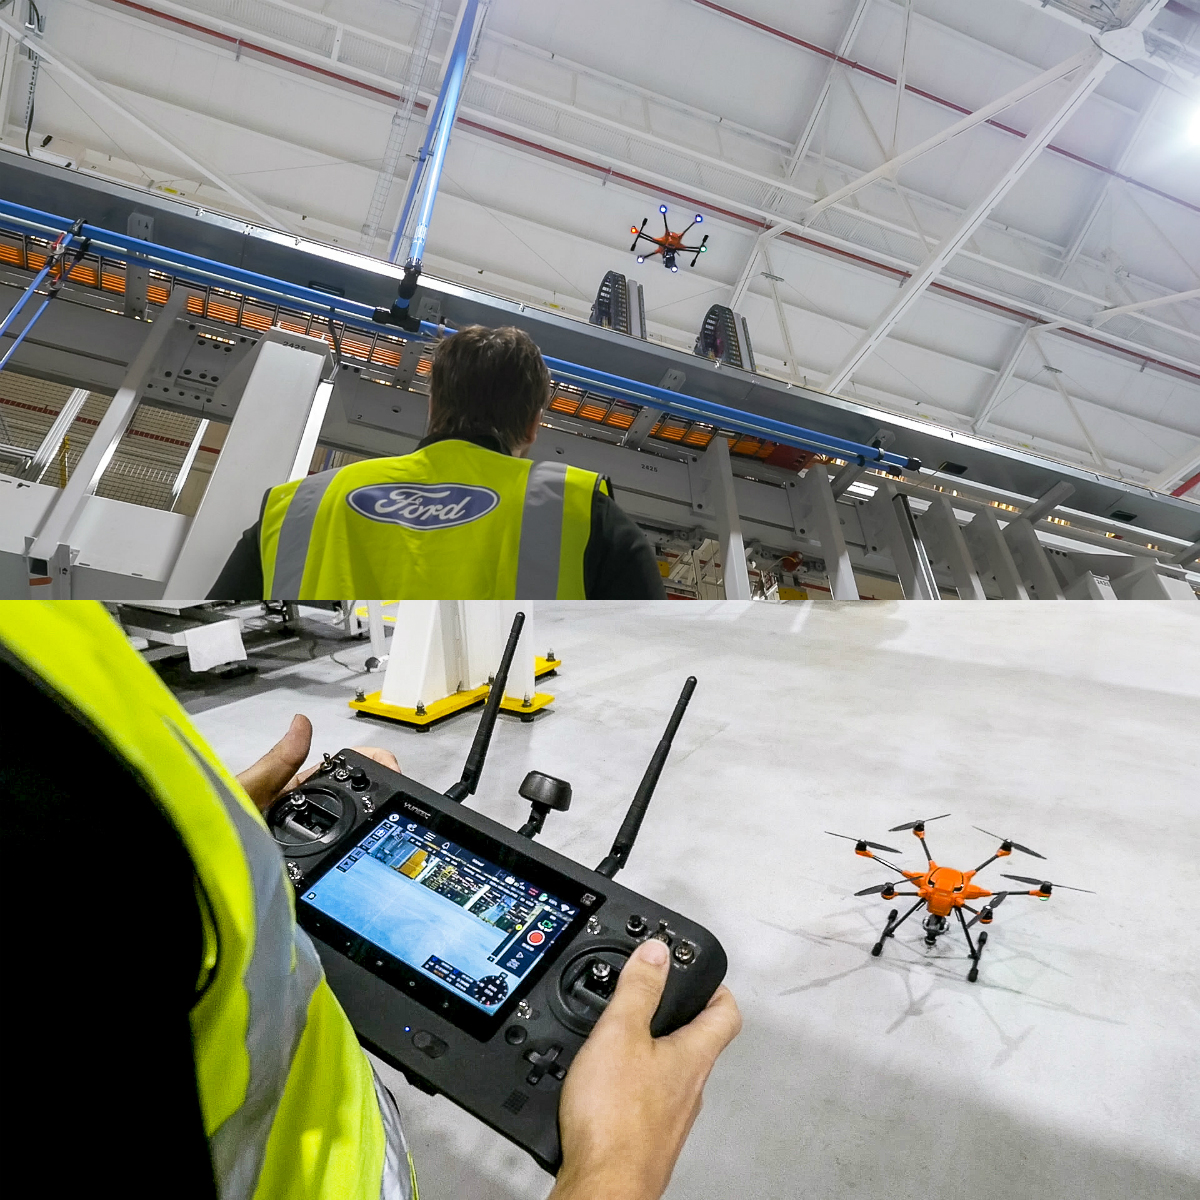 Ford employees are now using GoPro cameras mounted on drones to safely and efficiently inspect high-rise gantries, pipework and roof areas at the company's Dagenham Engine Plant in the UK, slashing the inspection time for each area from 12 hours to 12 minutes.